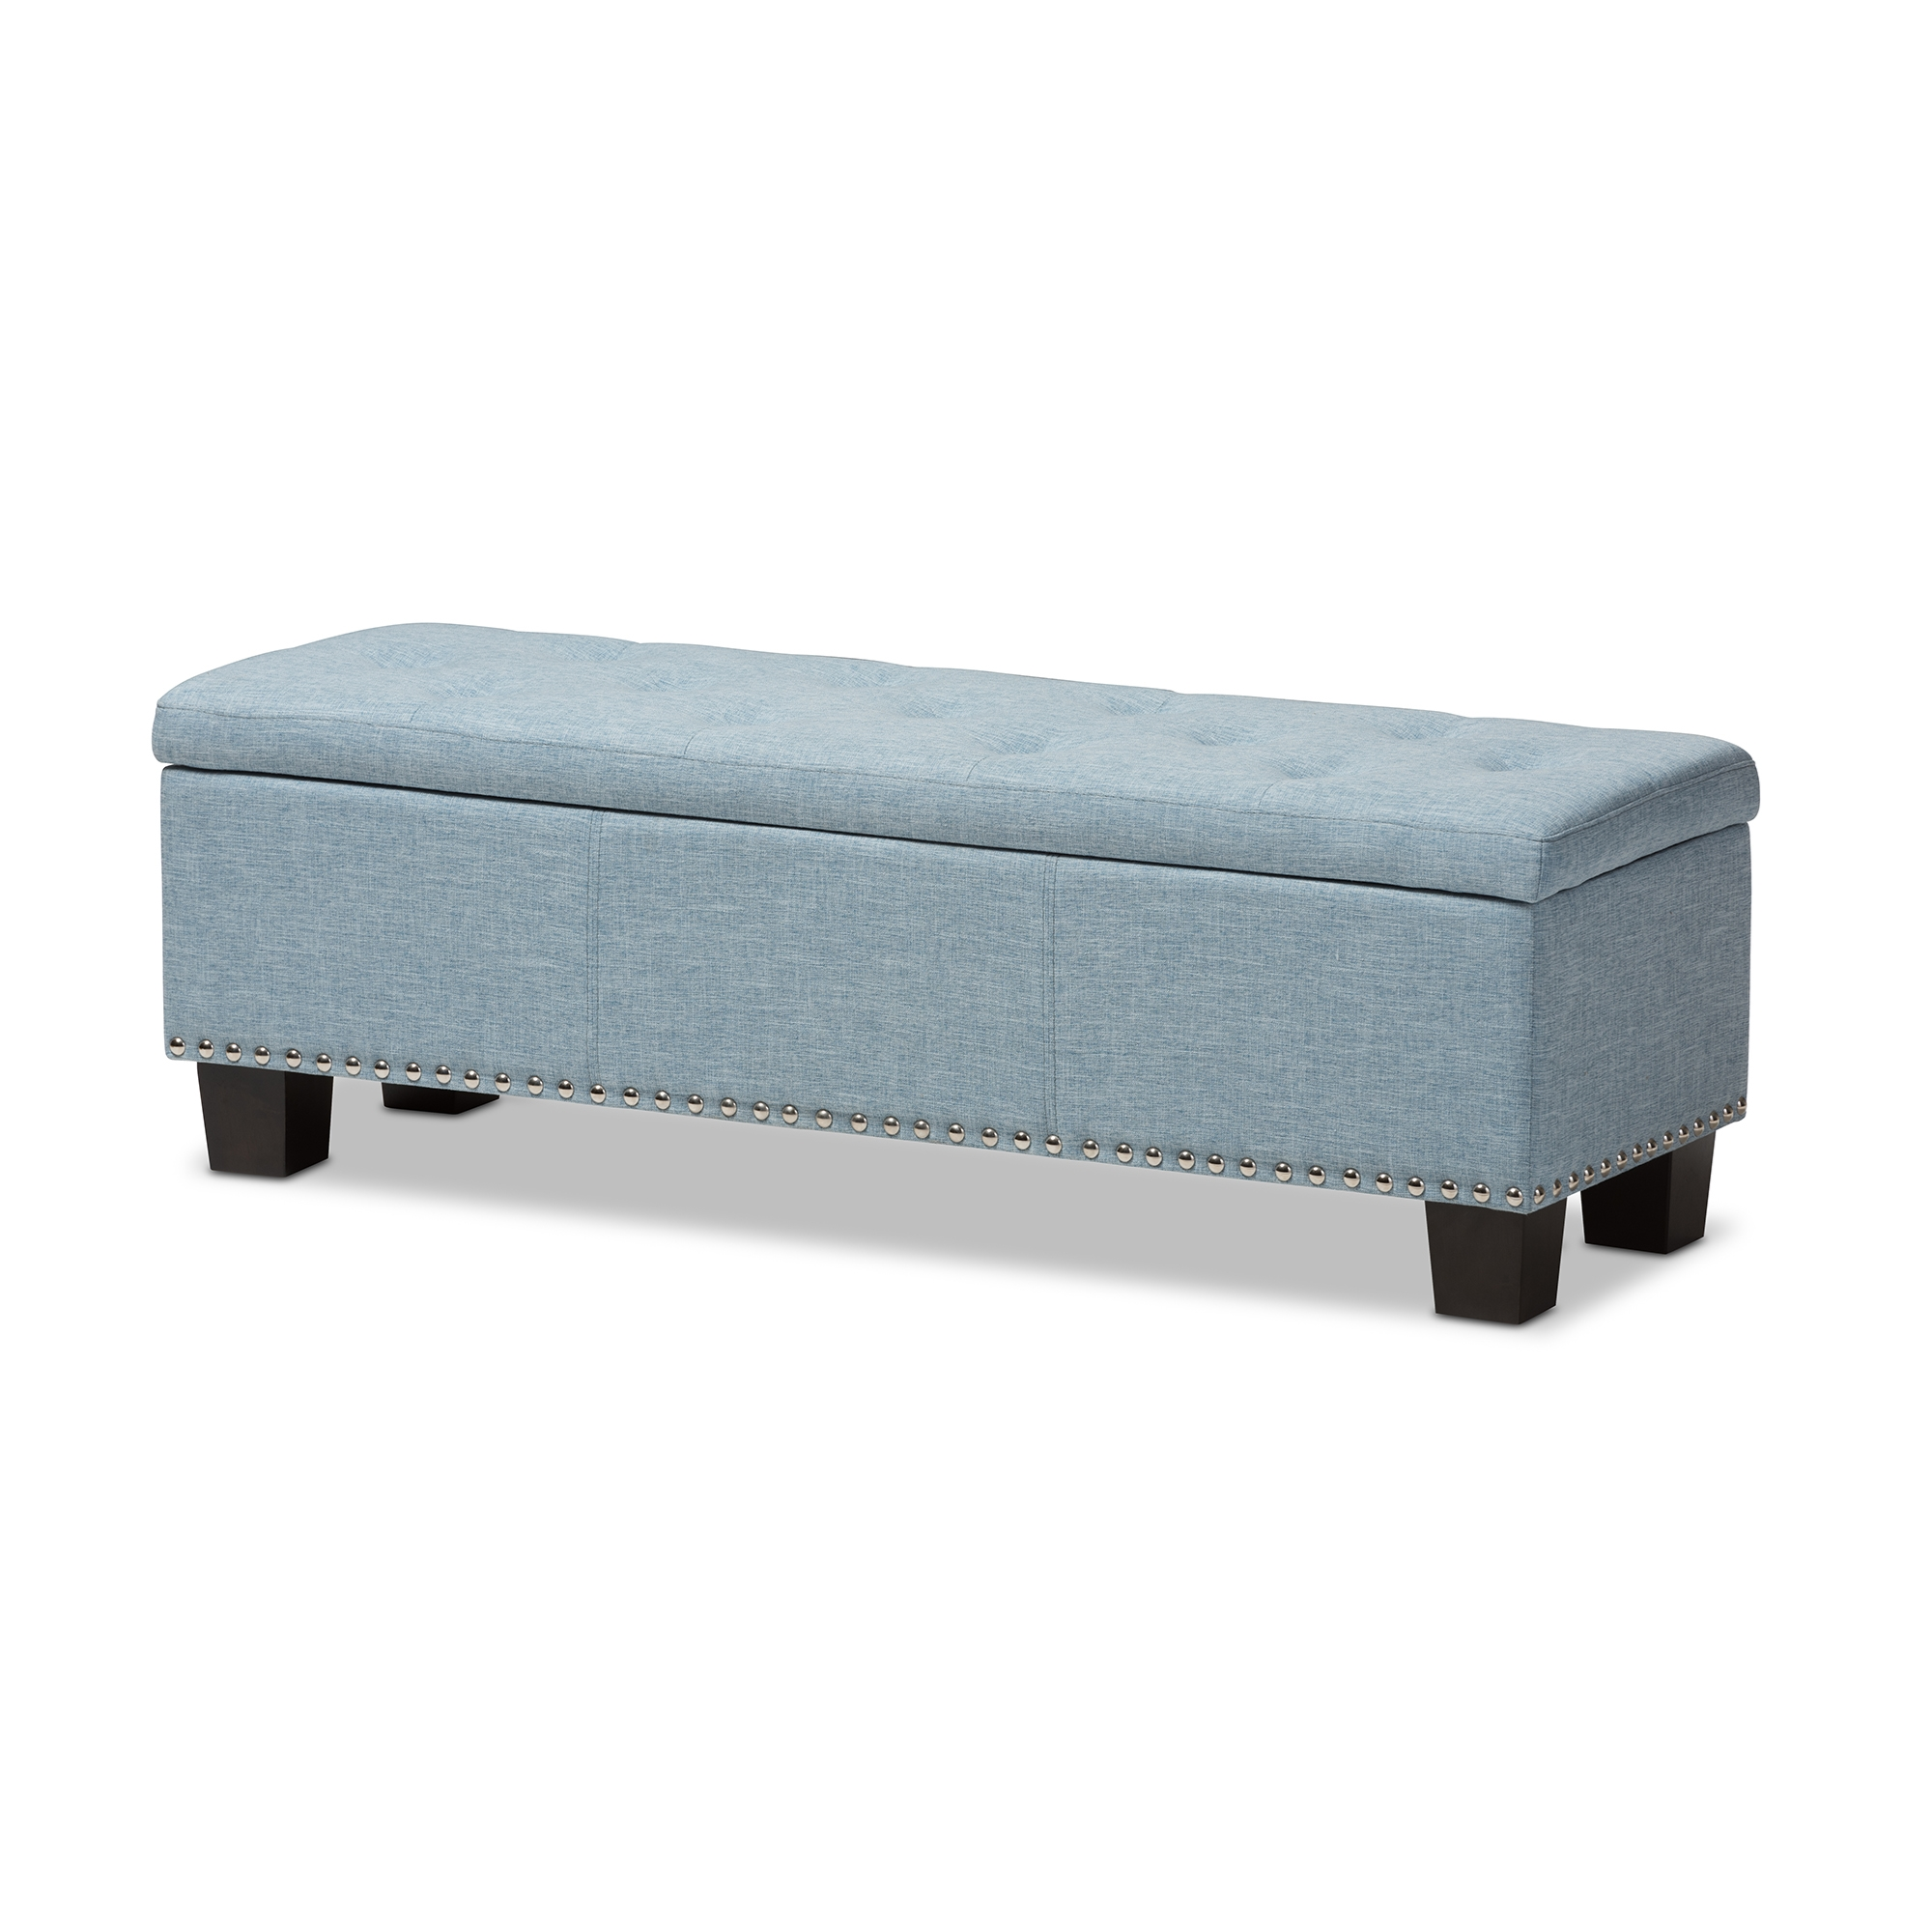 Baxton Studio Hannah Modern And Contemporary Light Blue Fabric Upholstered  Button Tufting Storage Ottoman Bench Part 55